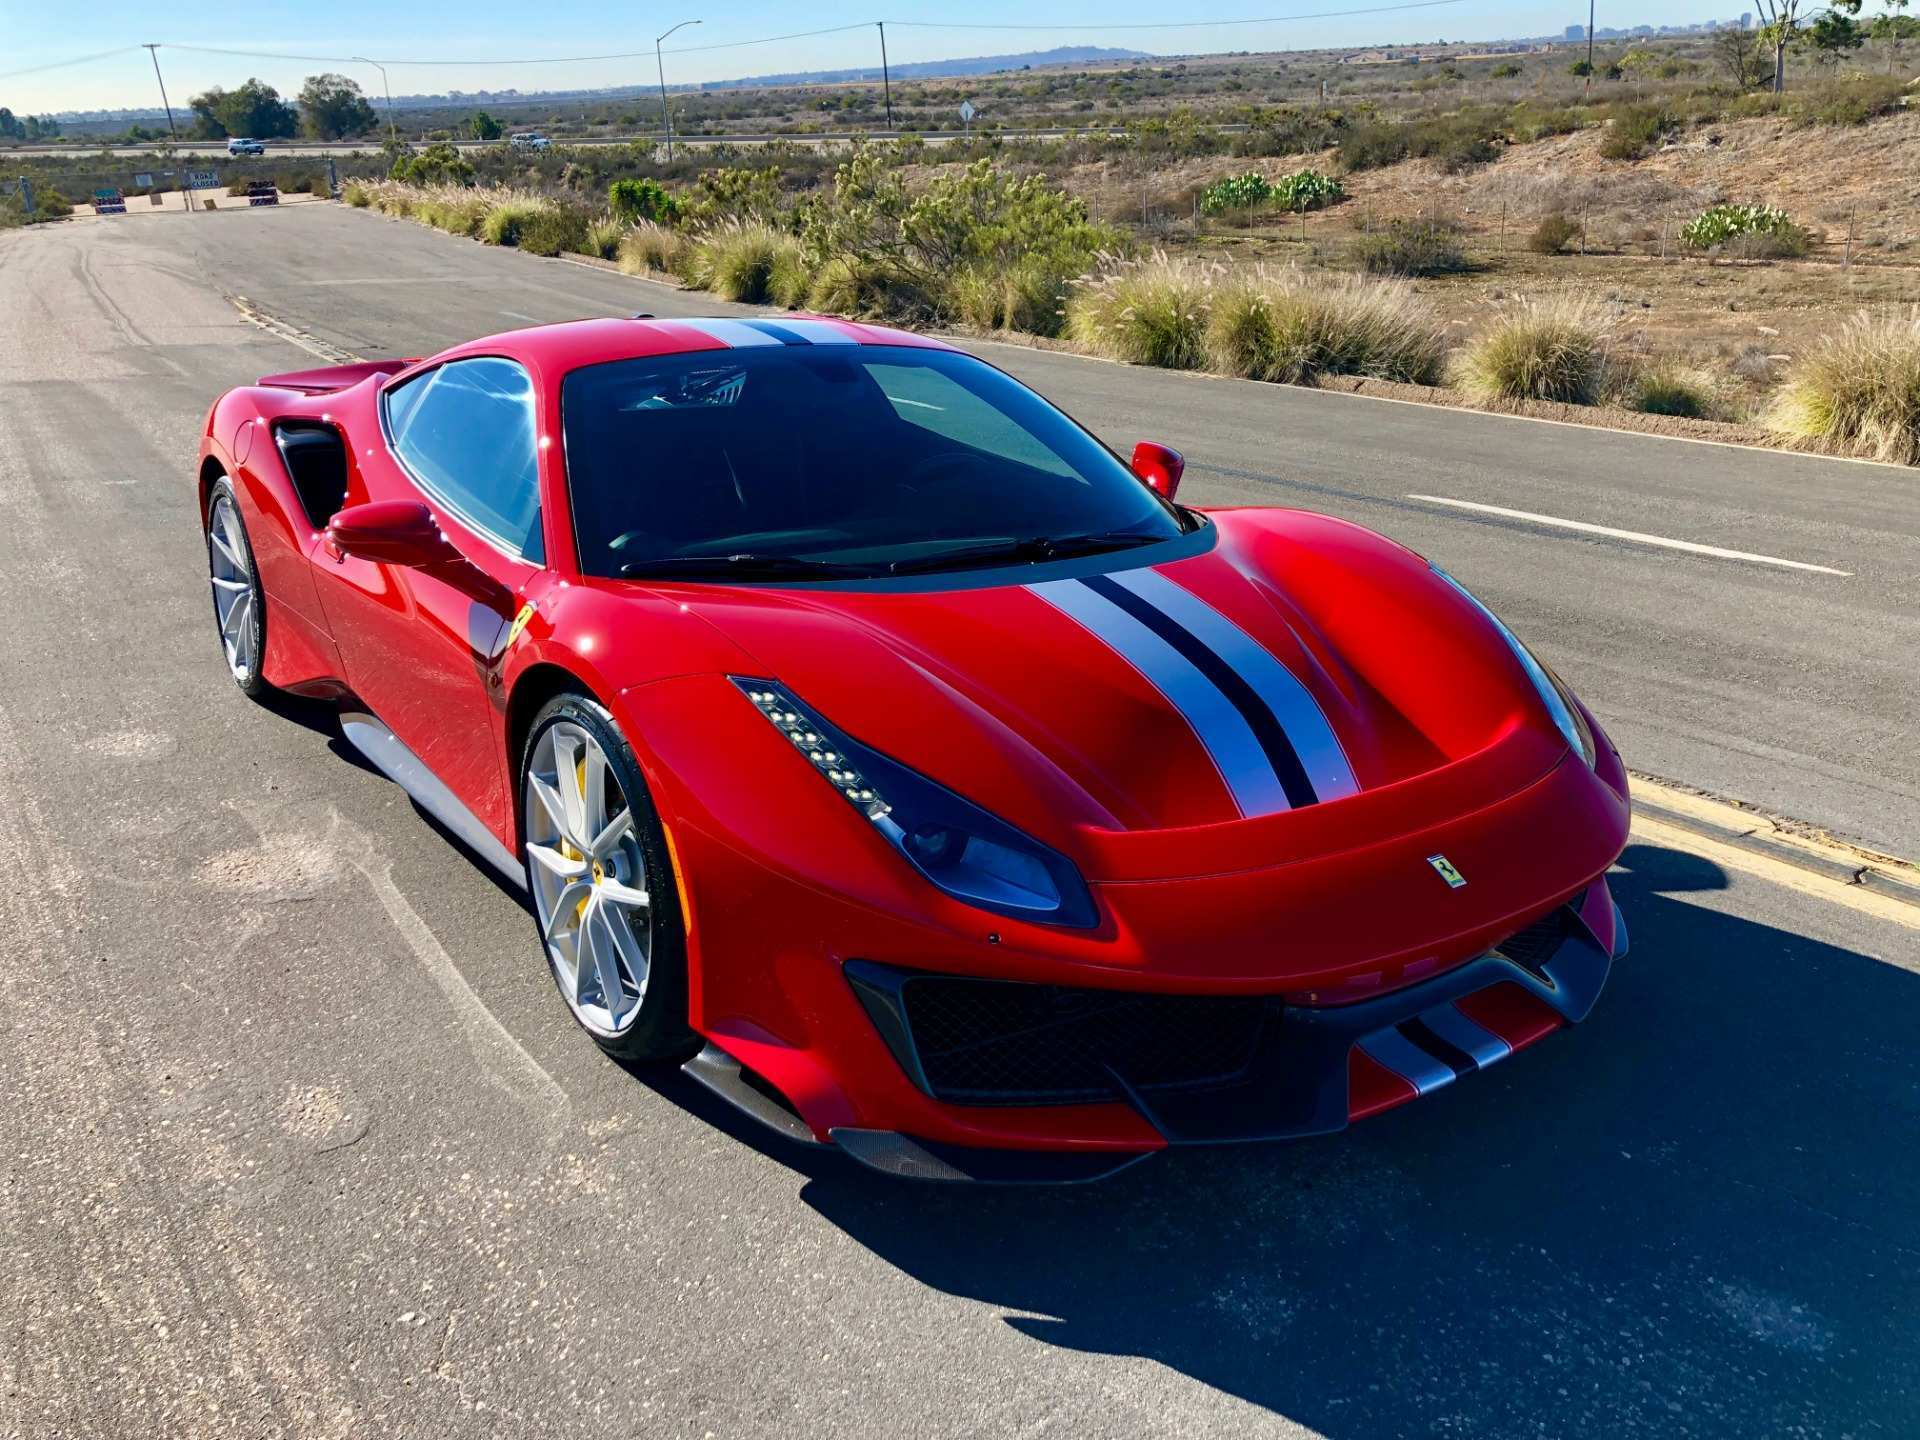 50 A 2019 Ferrari 488 Pista For Sale Release Date And Concept